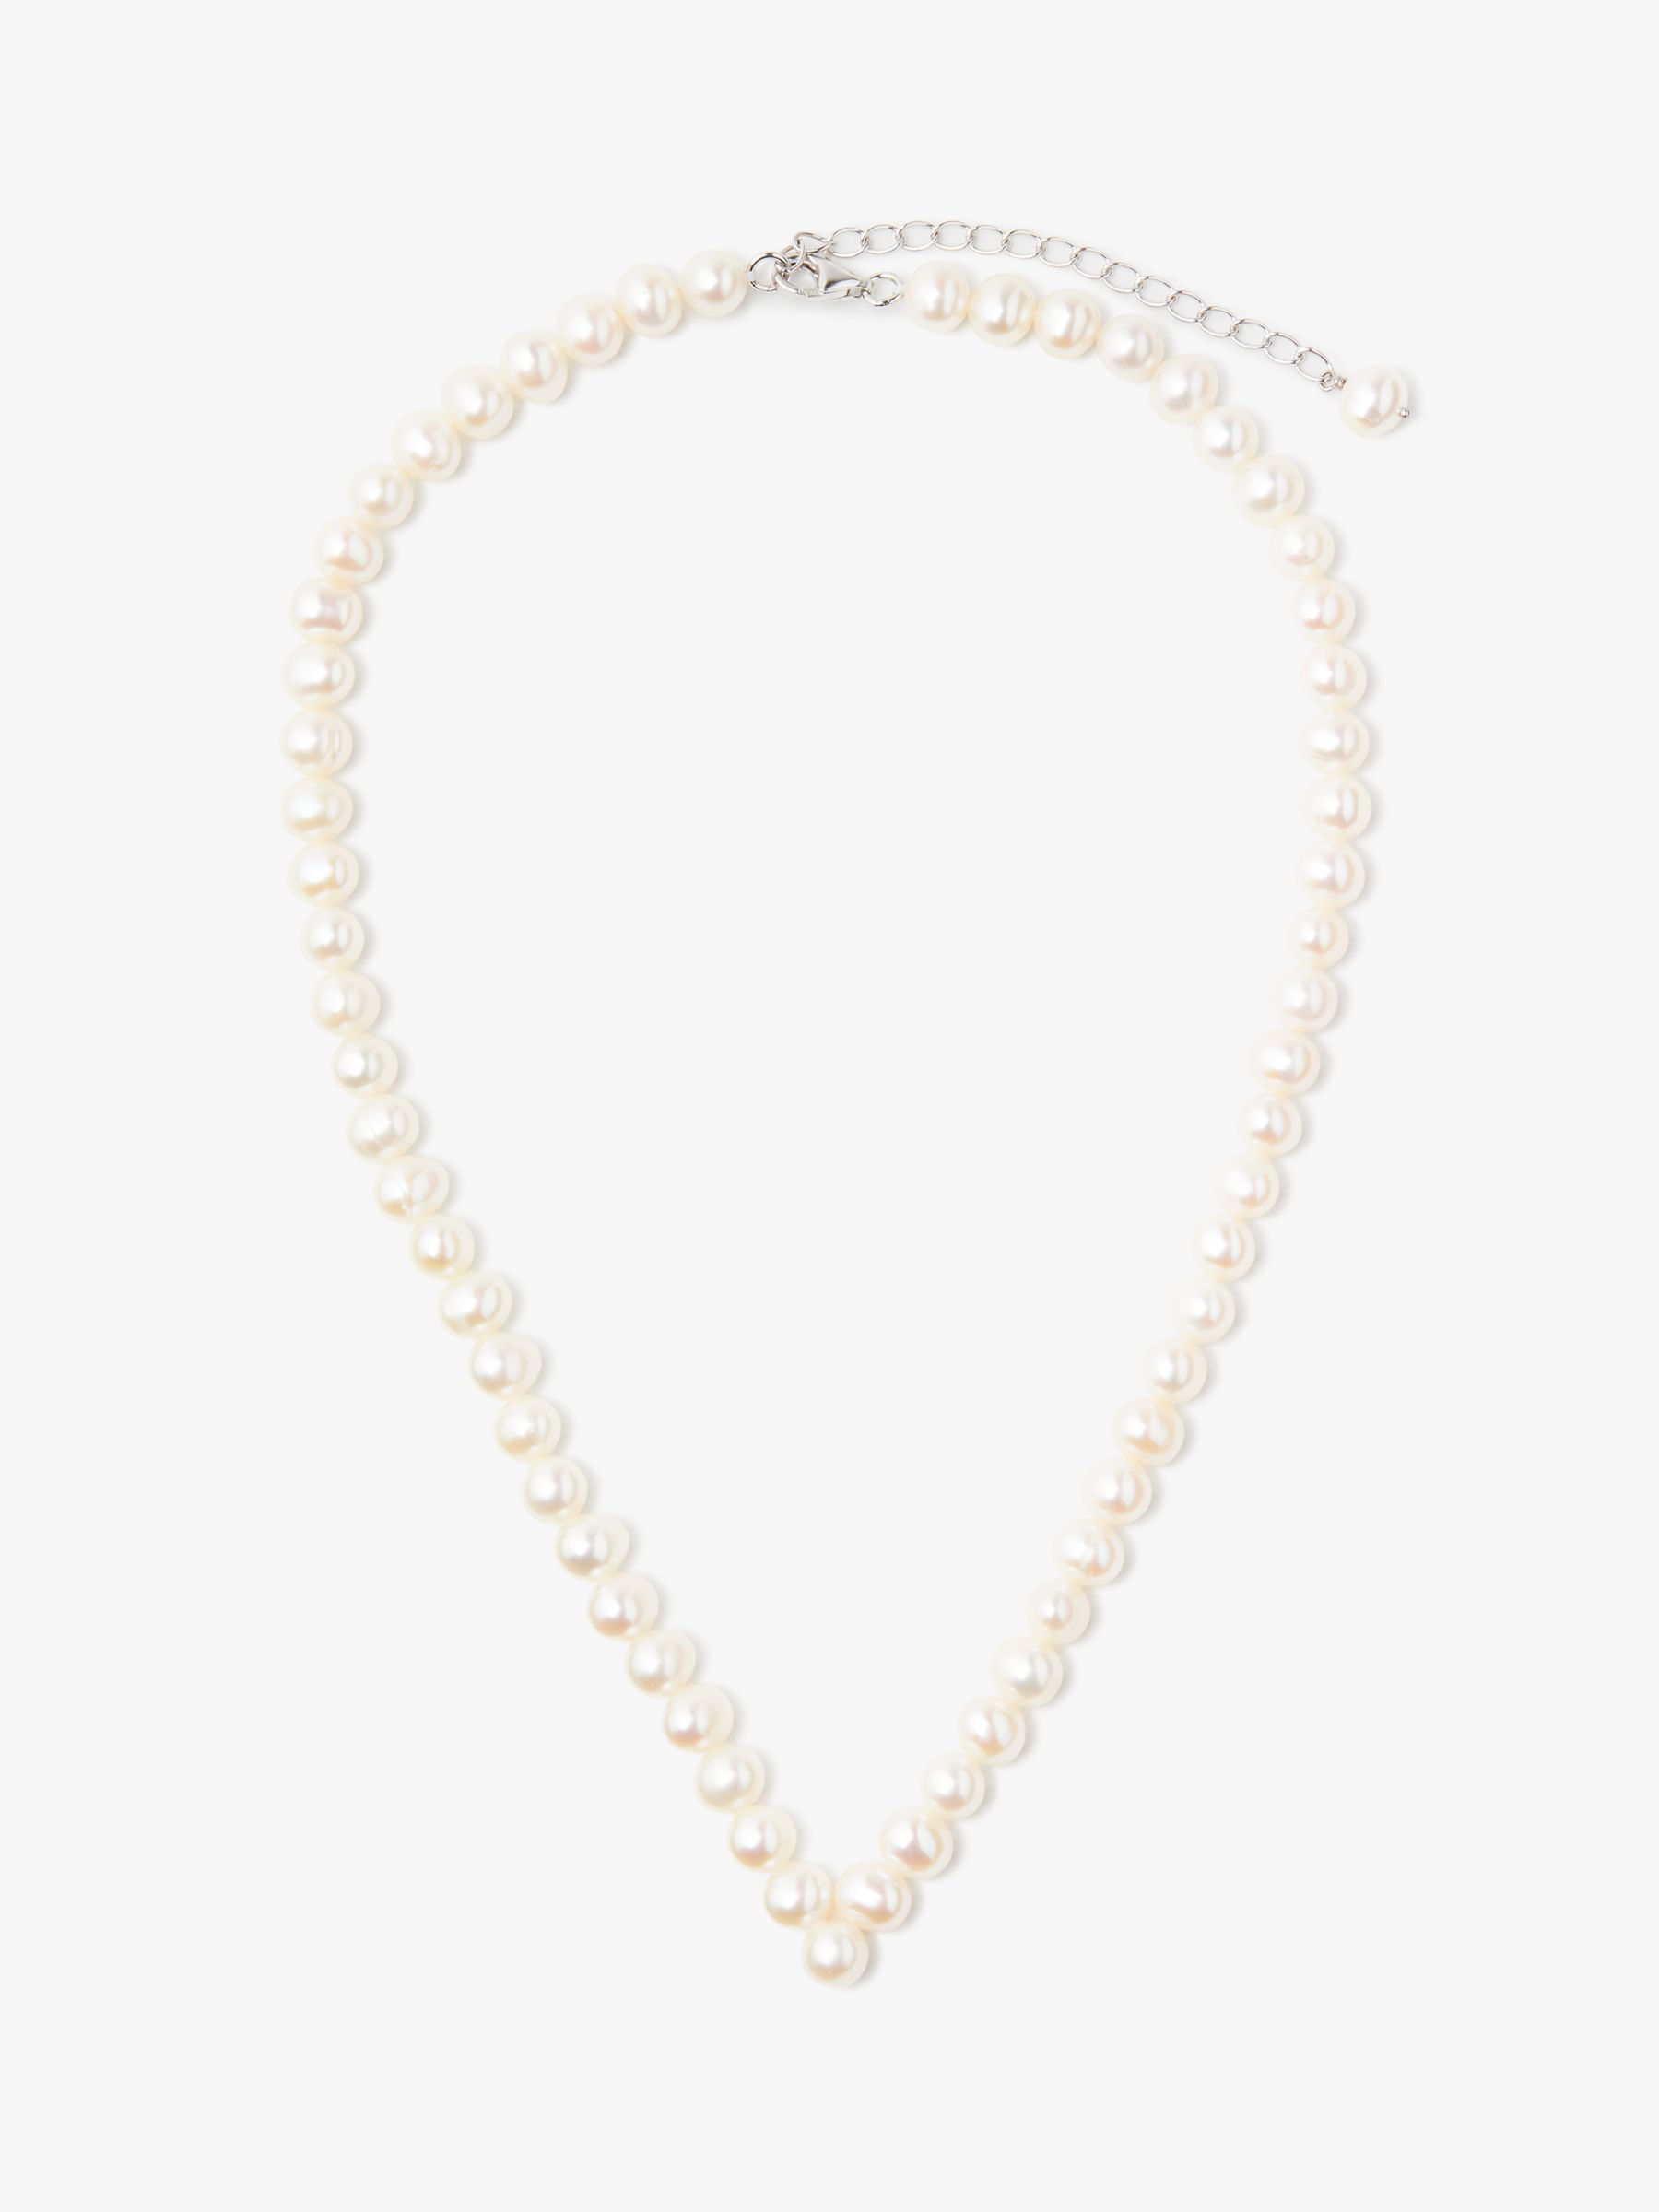 Lido Pearls Lido Pearls Freshwater Pearl V Necklace, White